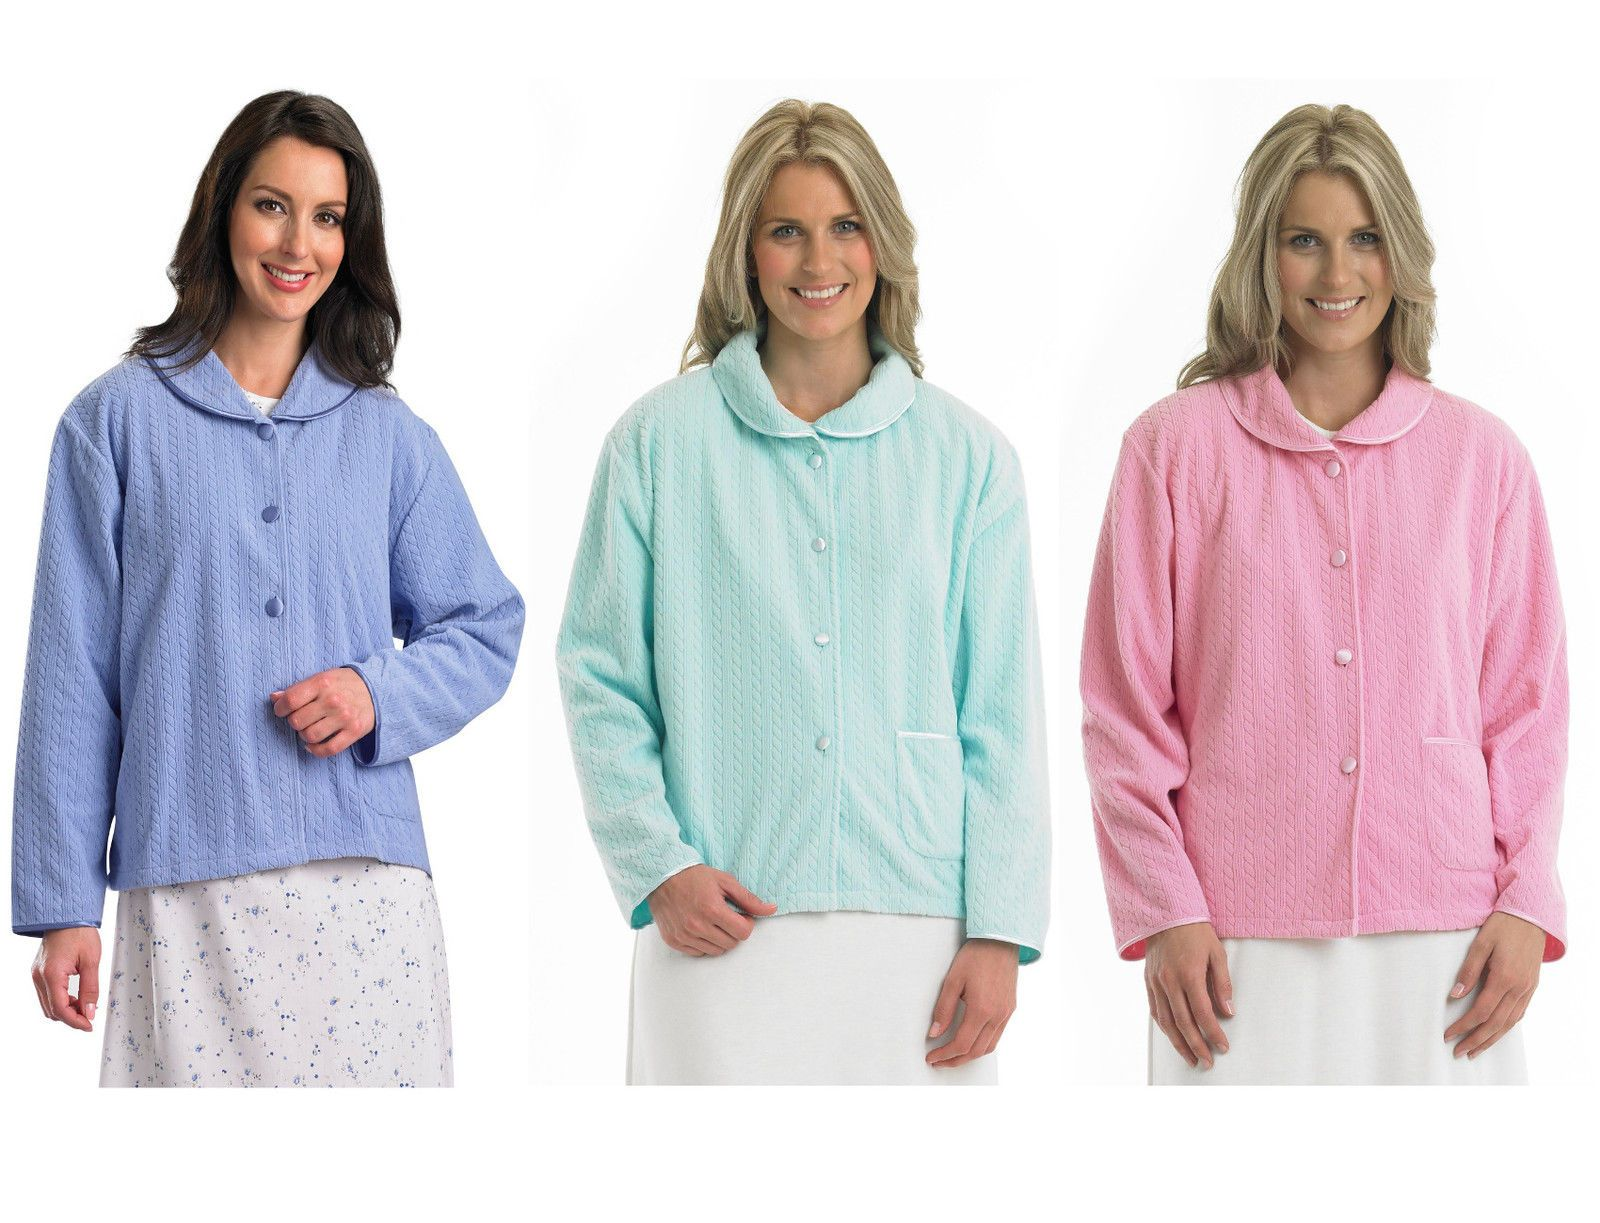 Slenderella Ladies Soft Fleece Button Up Bed Jacket Cable Style Housecoat  Pocket 0f8e8ef16